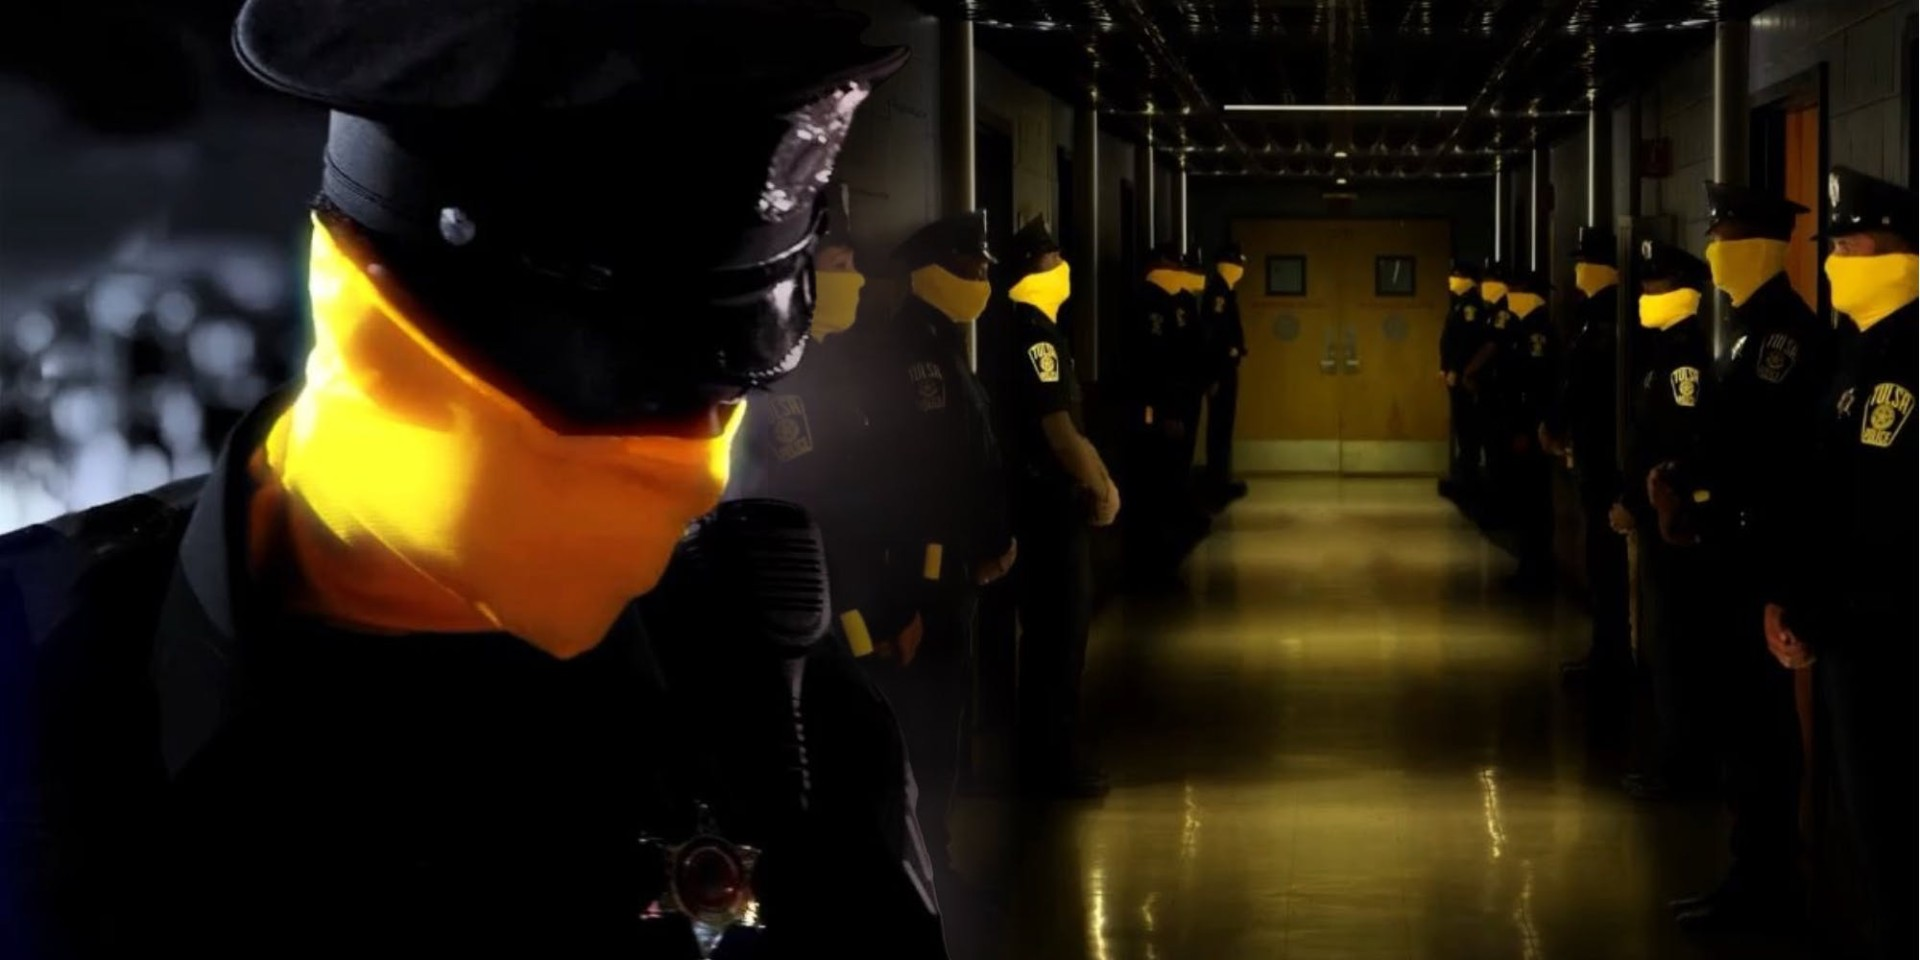 Watchmen-TV-series-plot-trailer-cast-and-more